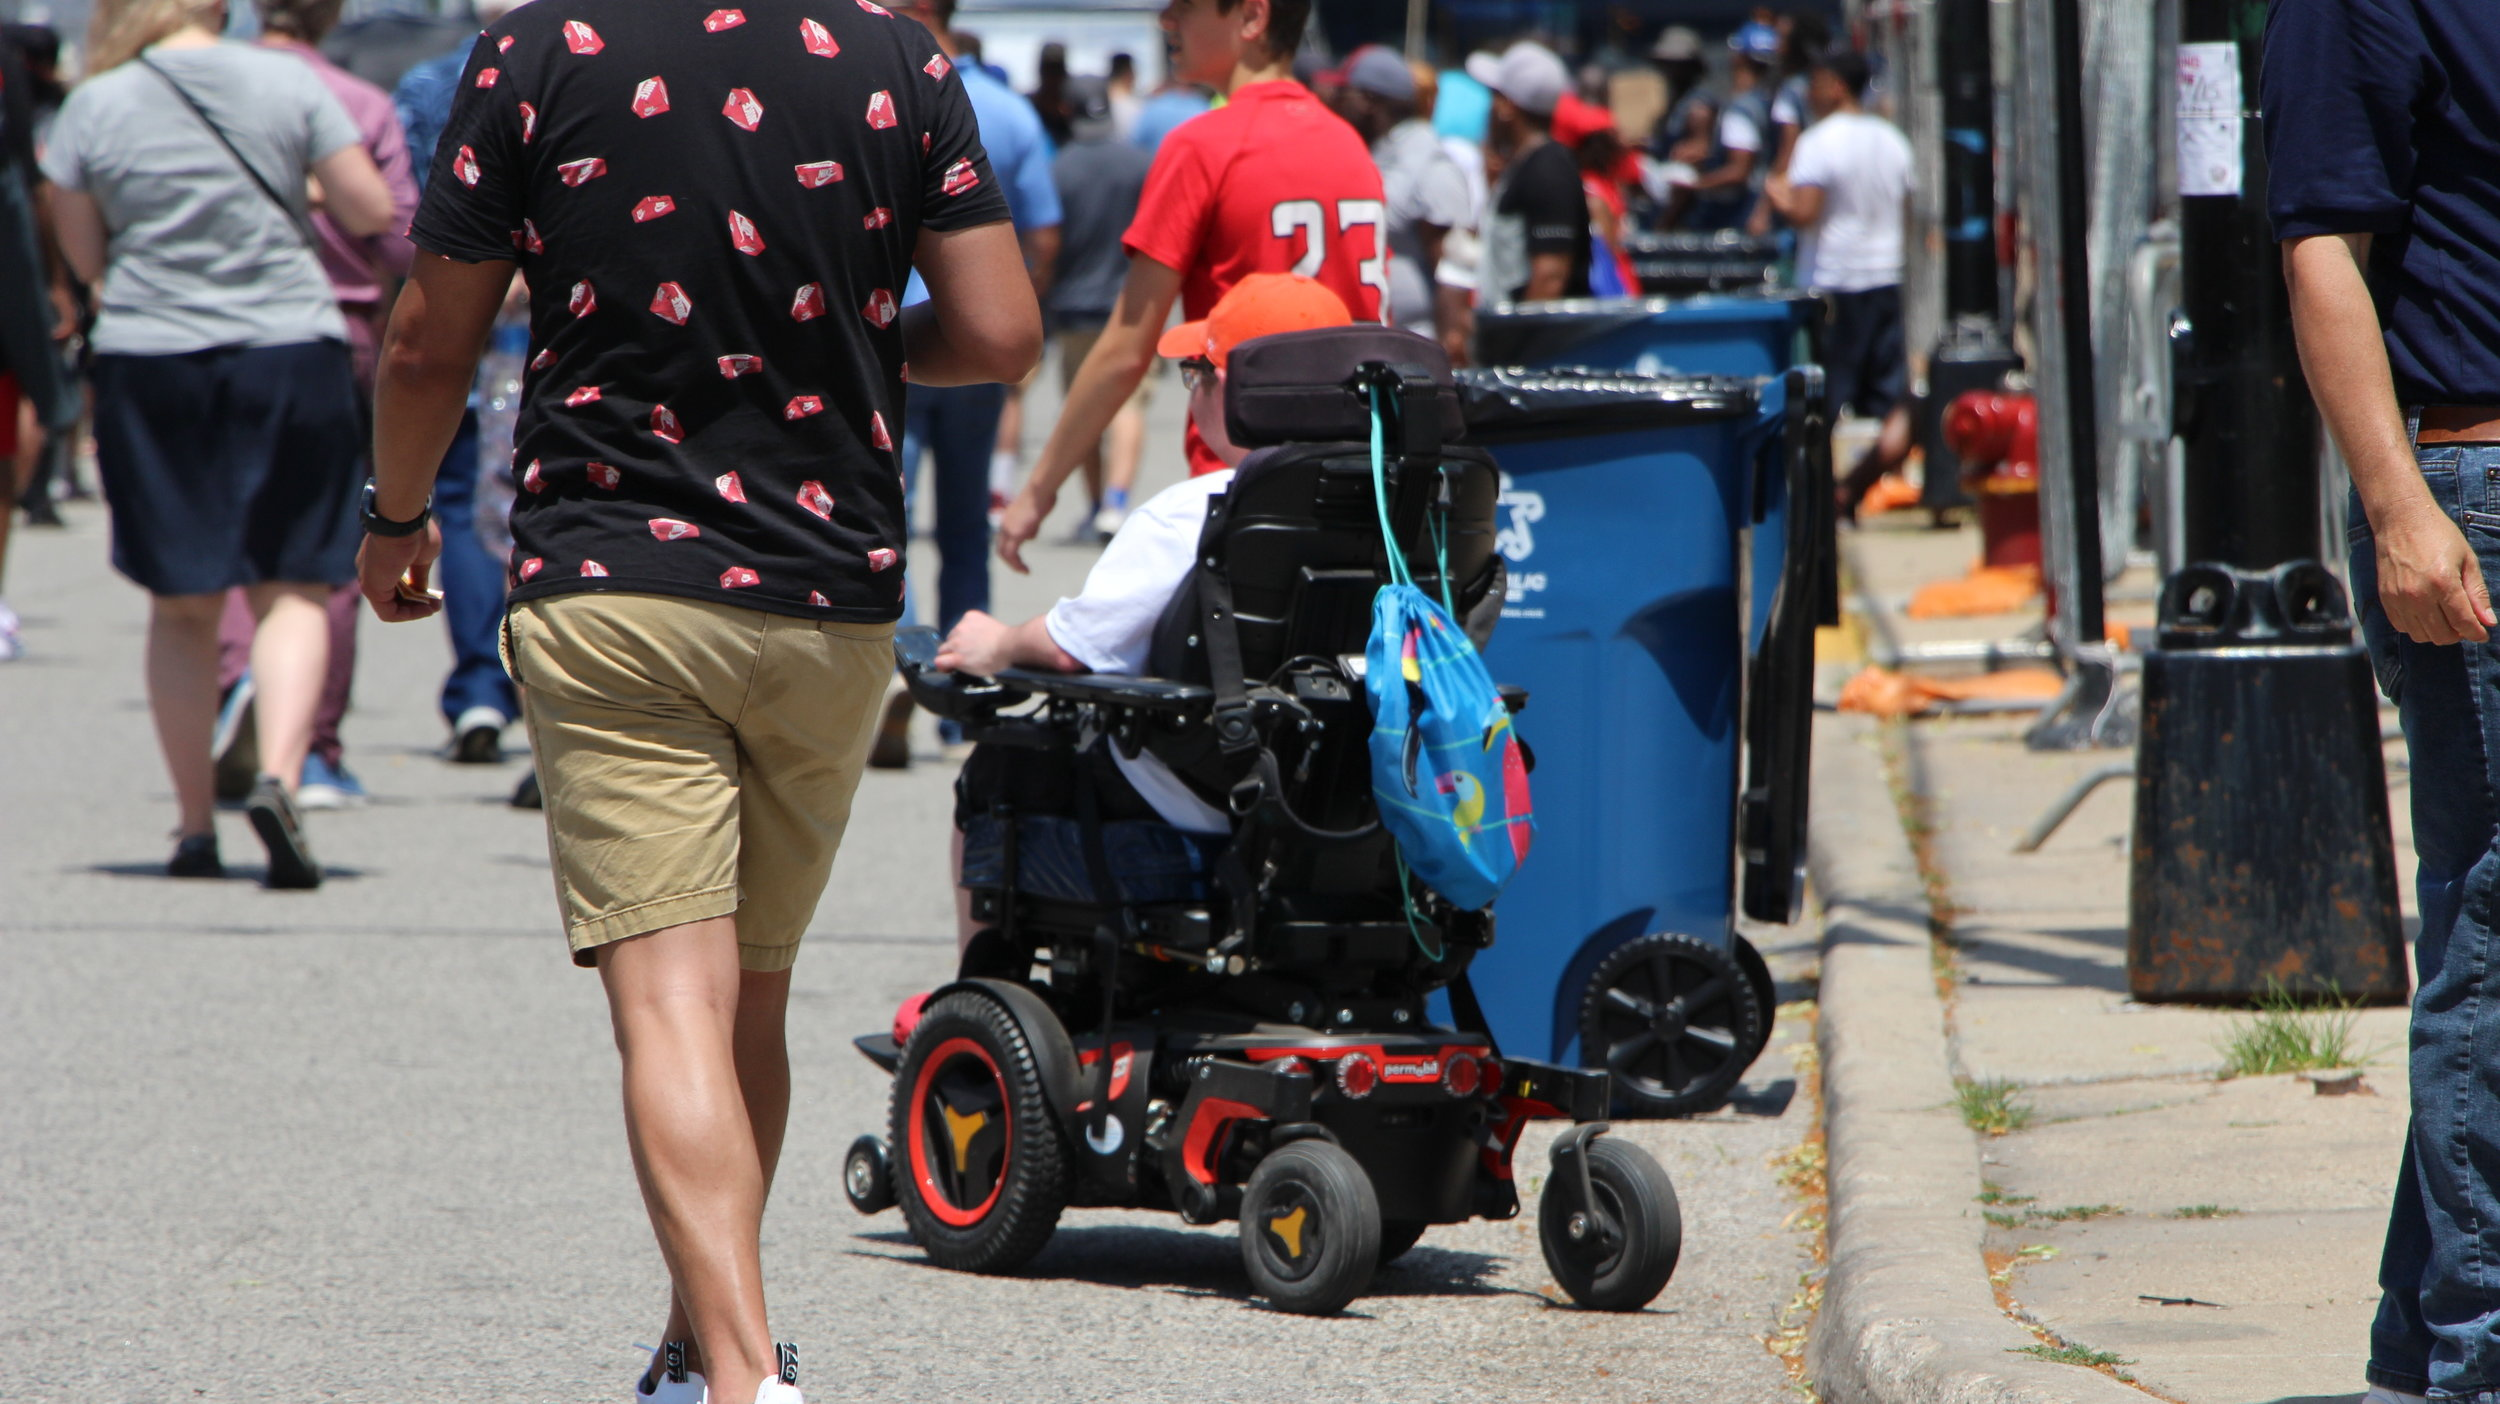 A wheelchair-user leaves the Taste of Chicago. Photo by Jerome Sanders